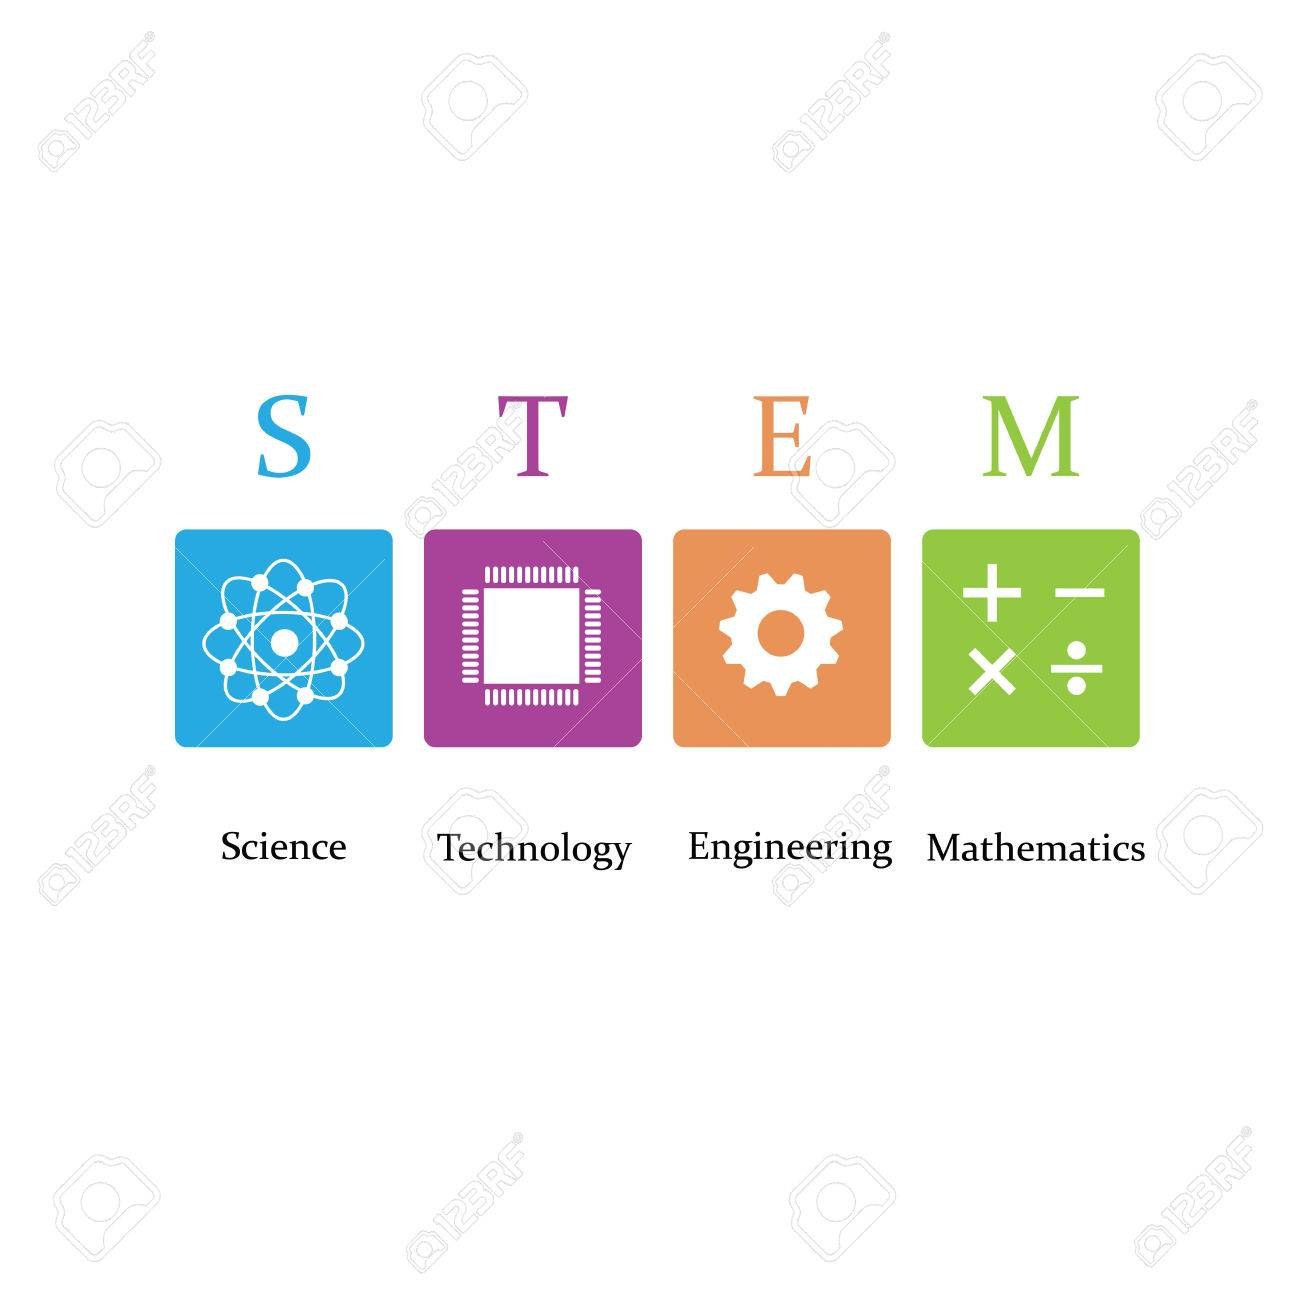 Vector illustration of Science, Technology, Engineering and Math education - 61000336